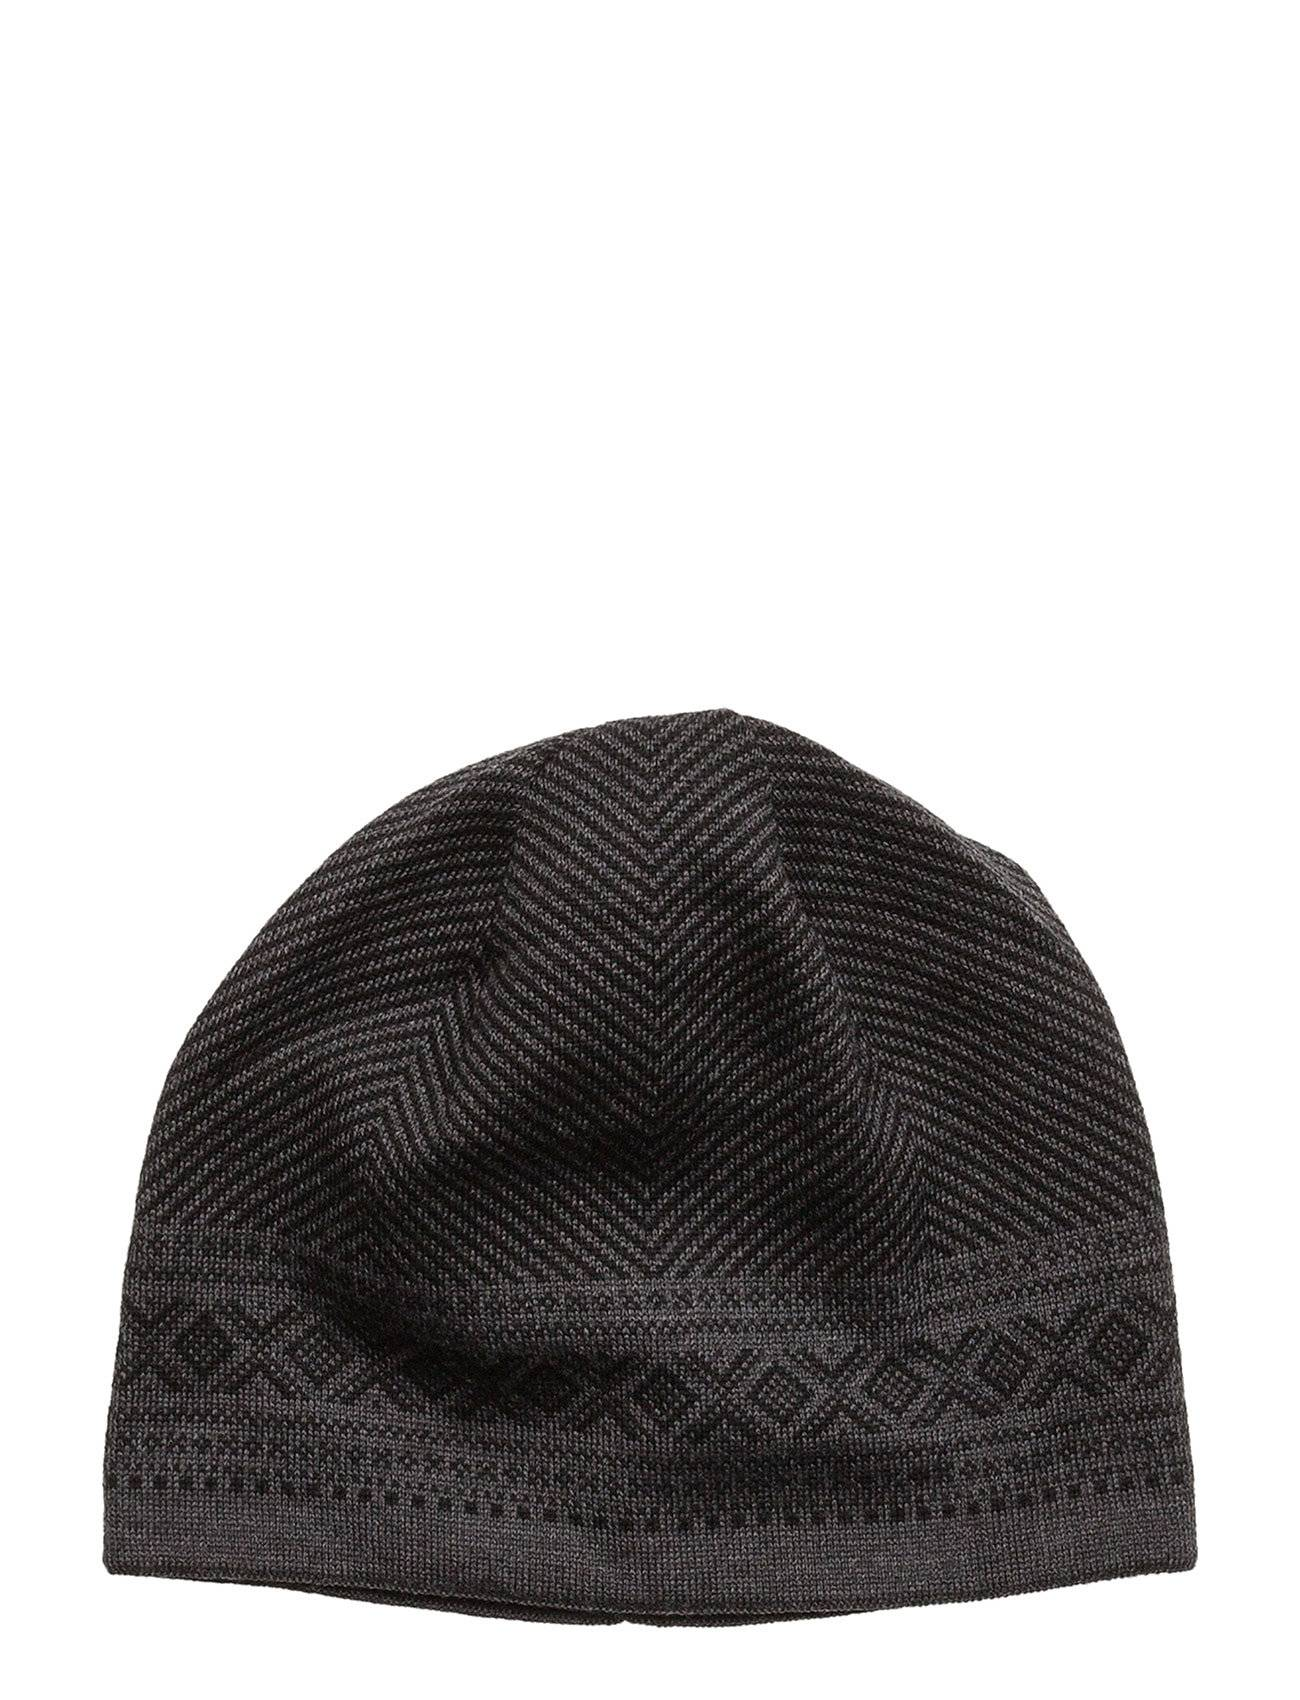 Dale of Norway Harald Hat